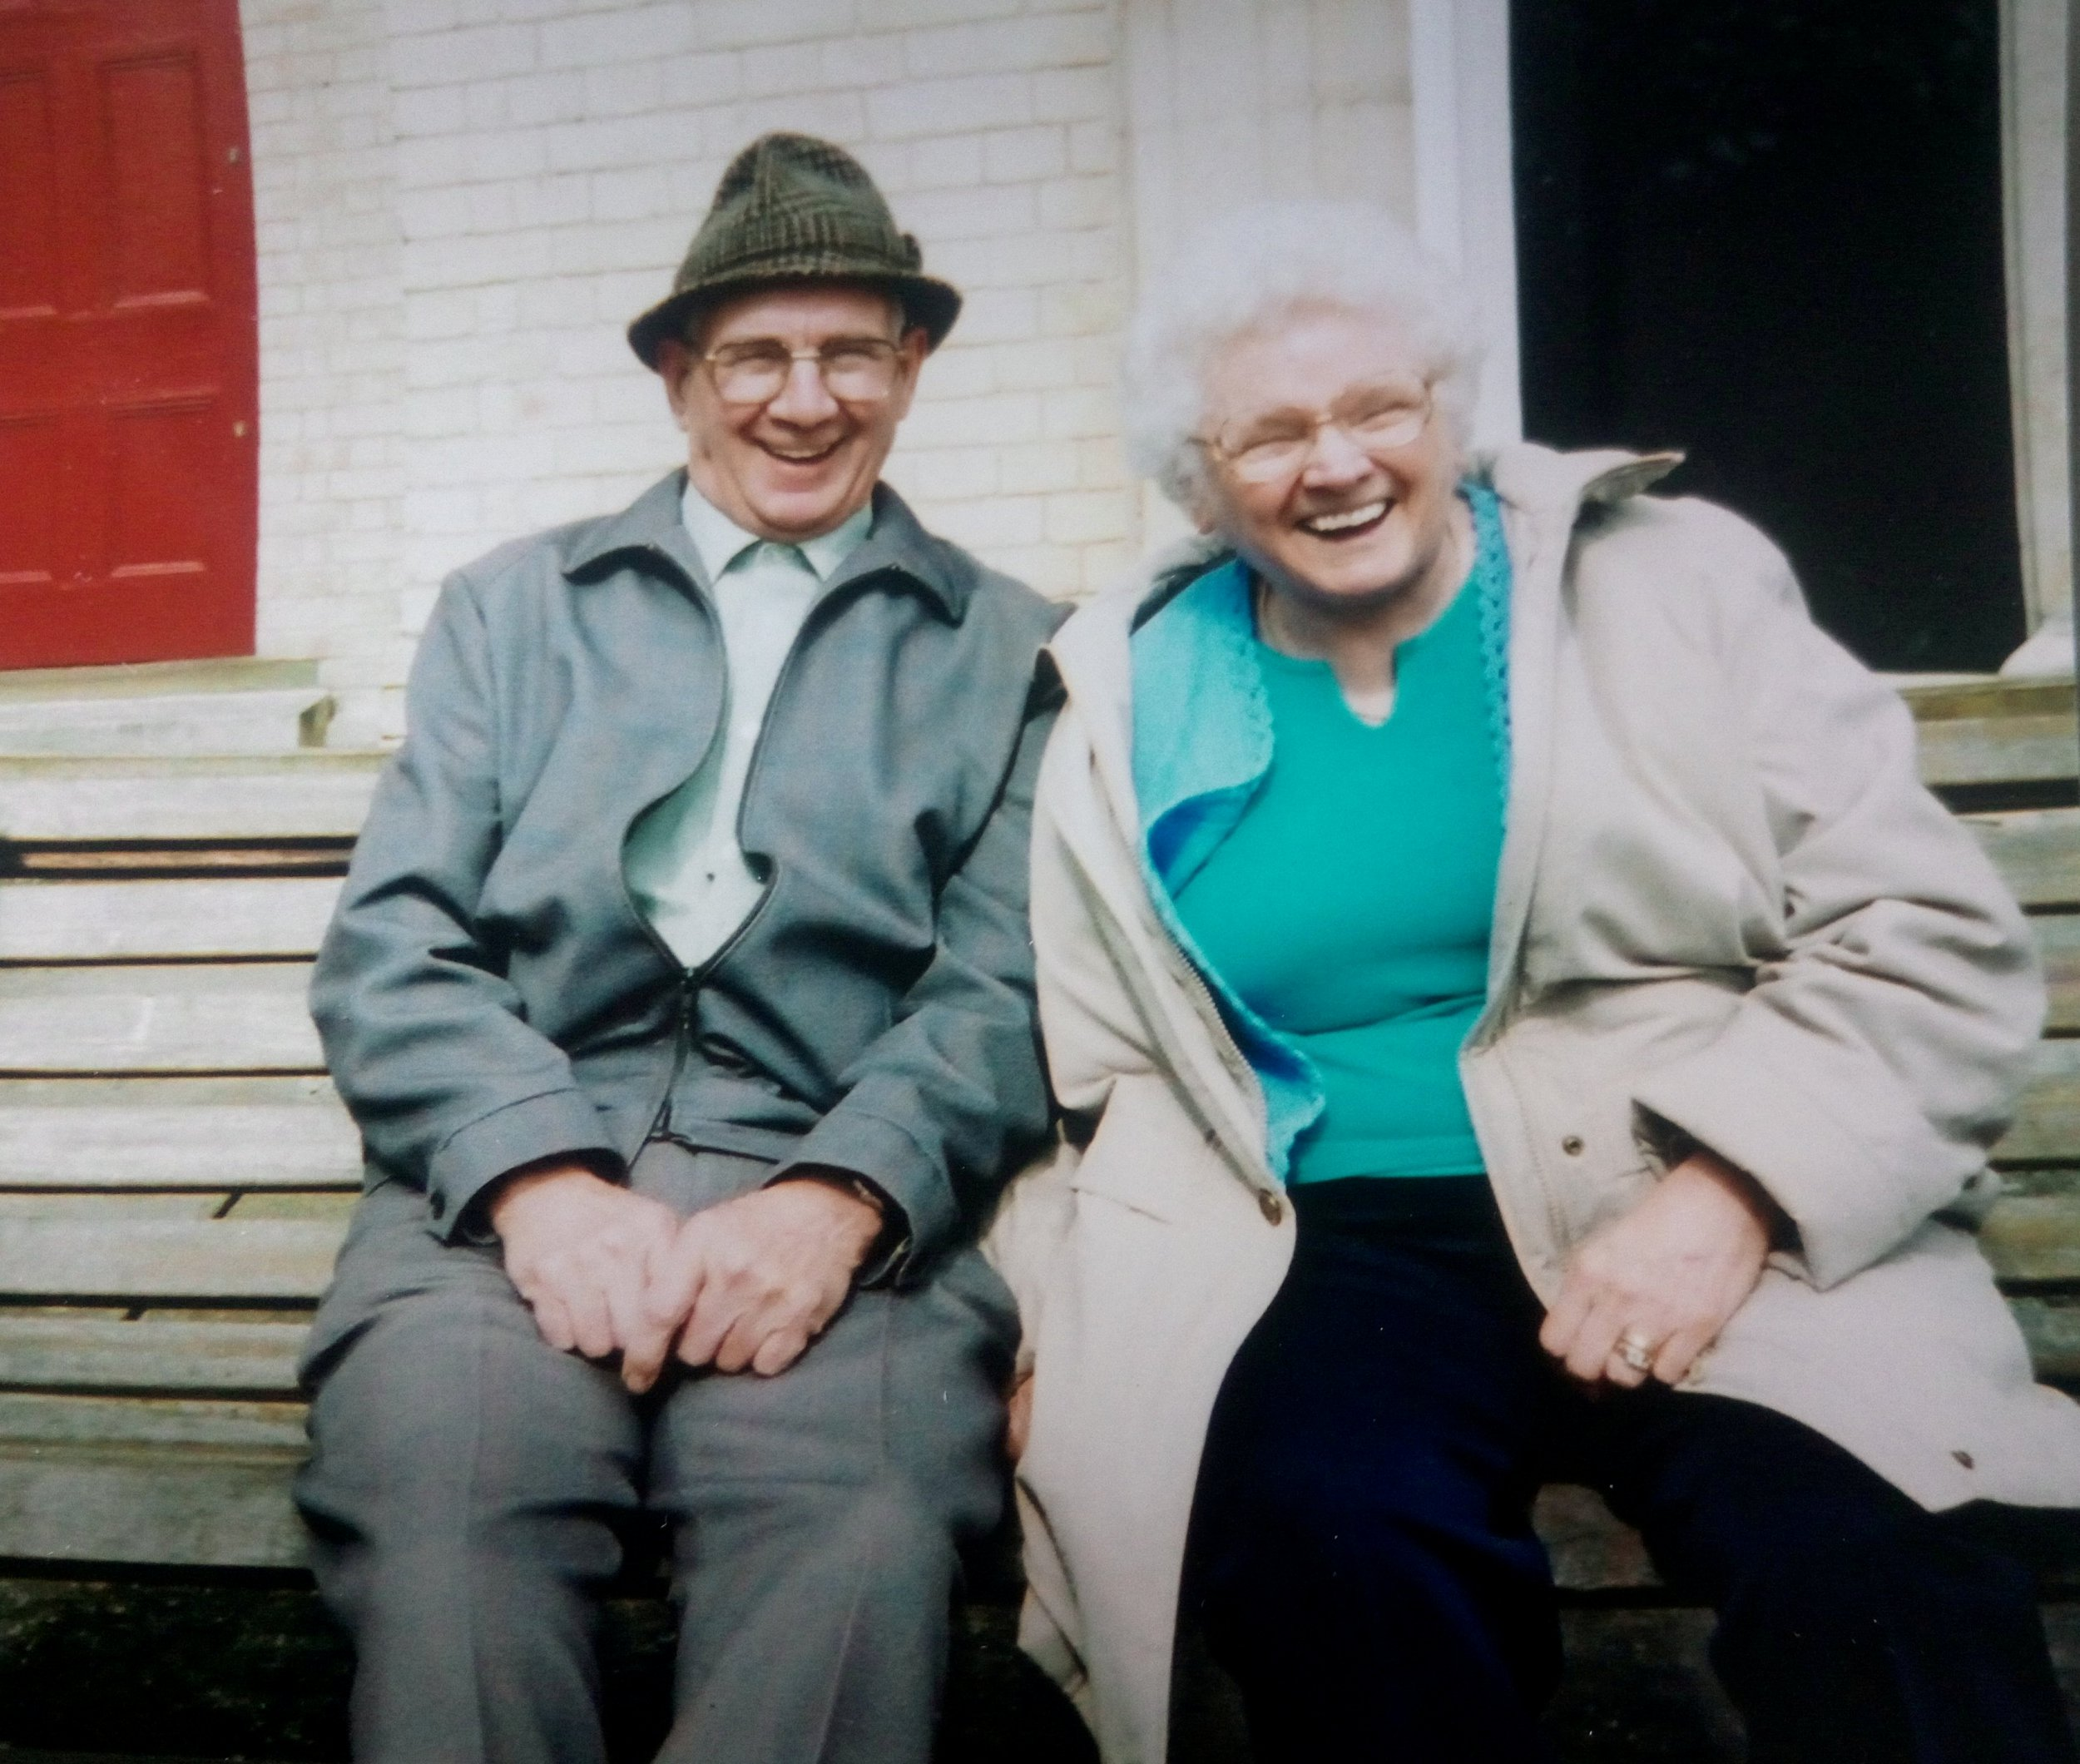 """Arnold, 89 and Amy,92 Hardy who died within days of each other. See Ross Parry copy RPYCOUPLE: A devoted elderly couple married for nearly 50 years died within days of each other because """"they could not bear to be apart"""". Arnold Hardy, 89, heartbreaking died without saying goodbye to his beloved wife Amy, 92, who passed away 10 days later. The pair both lived in different nursing homes and she was never told of his death but sensed ???something was wrong???, according to family. In a fitting tribute to the dedicated couple, their ashes are now buried in plots side-by-side at a churchyard in Warsop, Notts."""